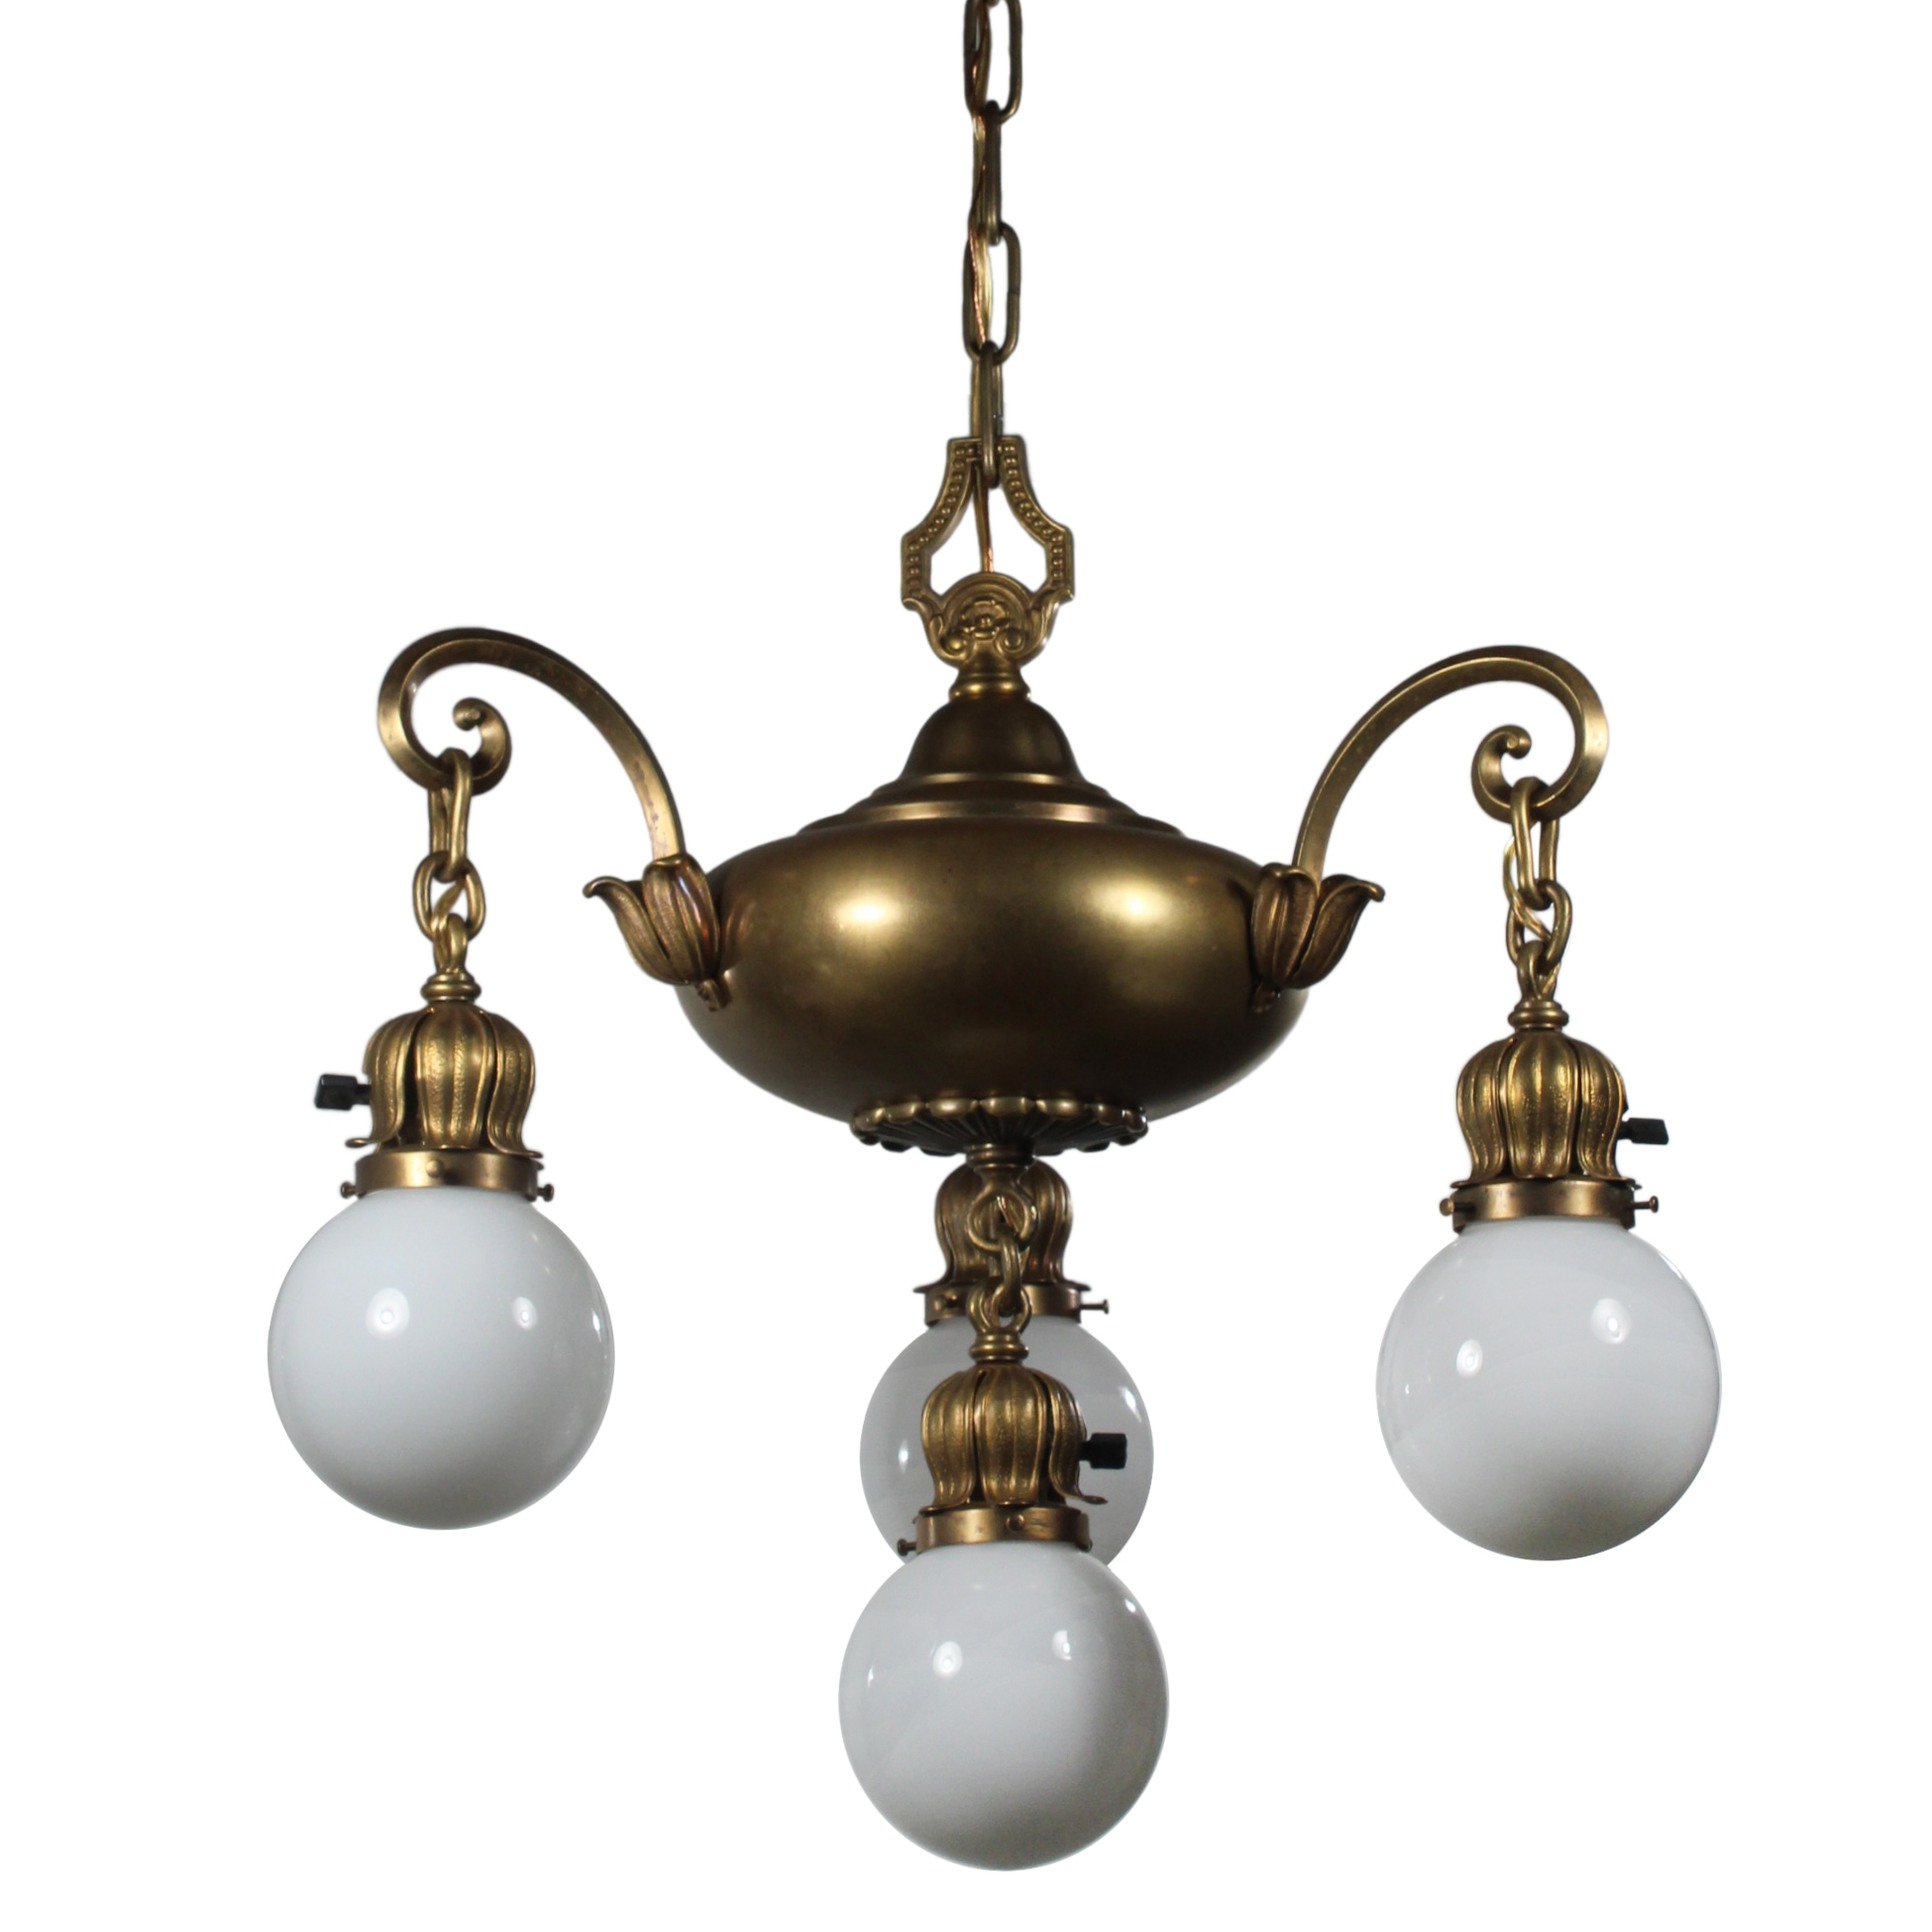 Antique Brass Chandelier with Glass Ball Shades, Early 1900s